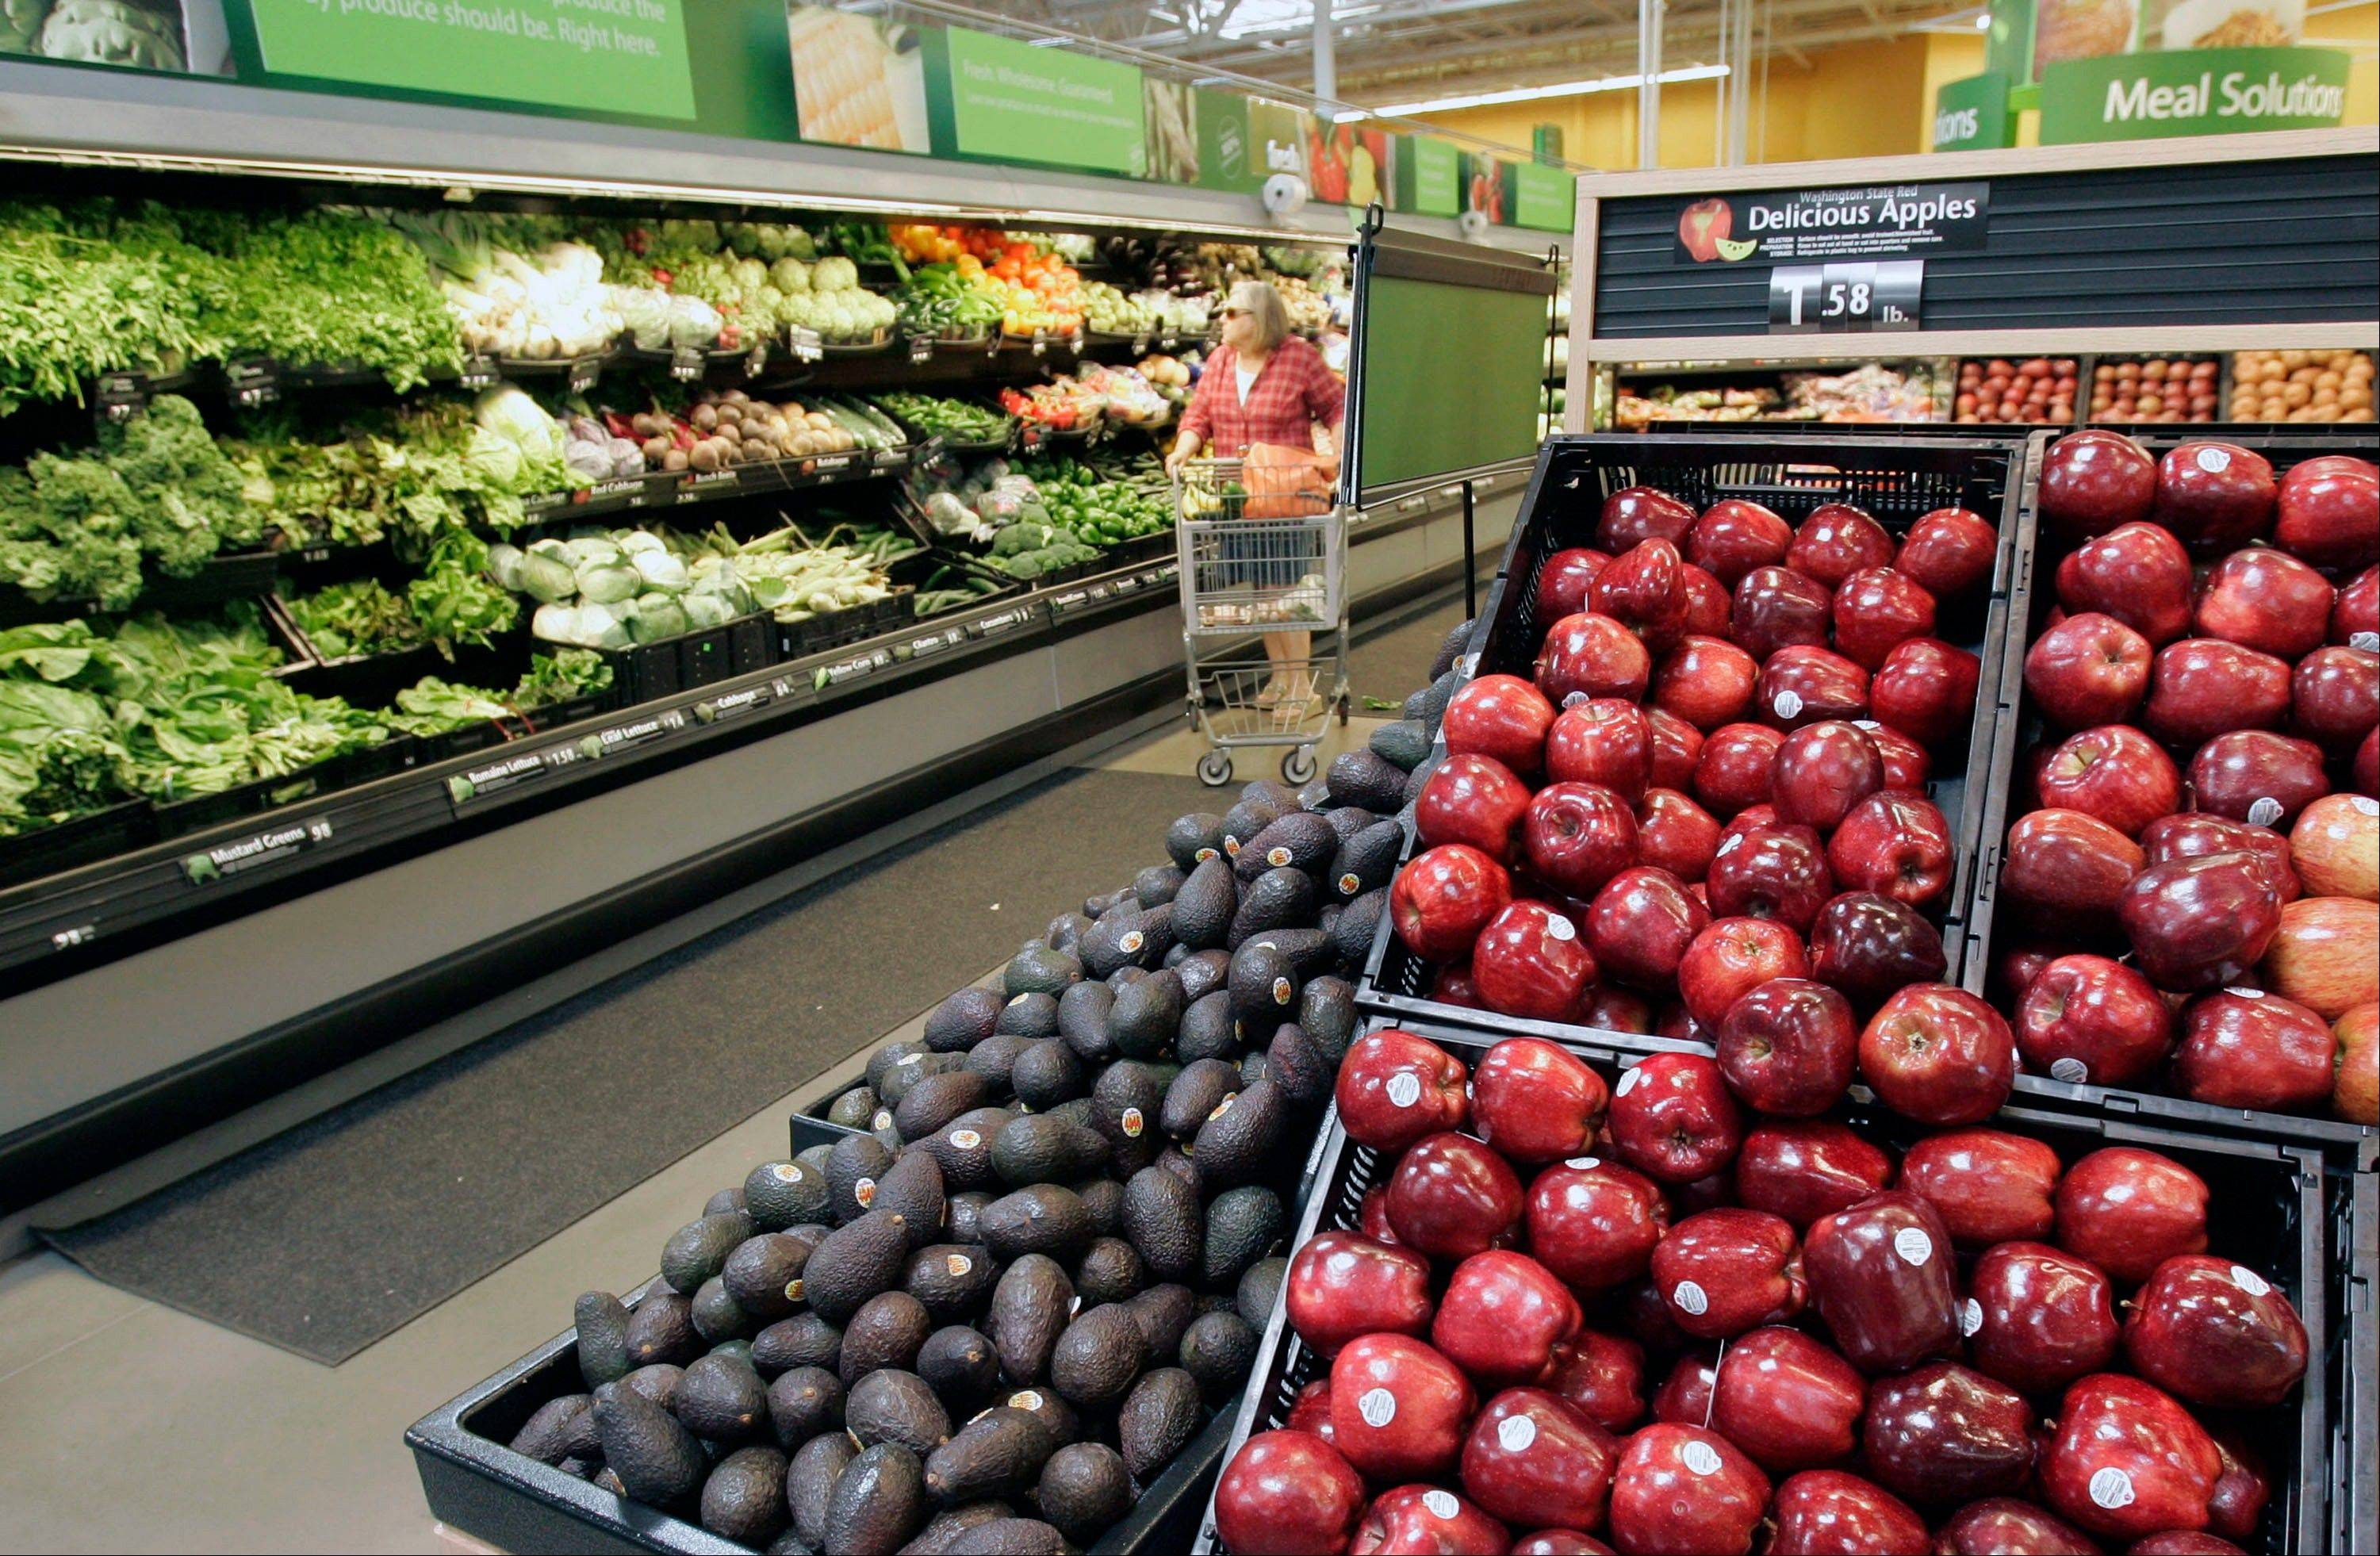 A woman shops for produce in a Maumelle, Ark., Wal-Mart Stores Inc., Supercenter store. The nation's largest grocer and retailer announced steps Monday to improve the quality of its fresh fruits and vegetables.